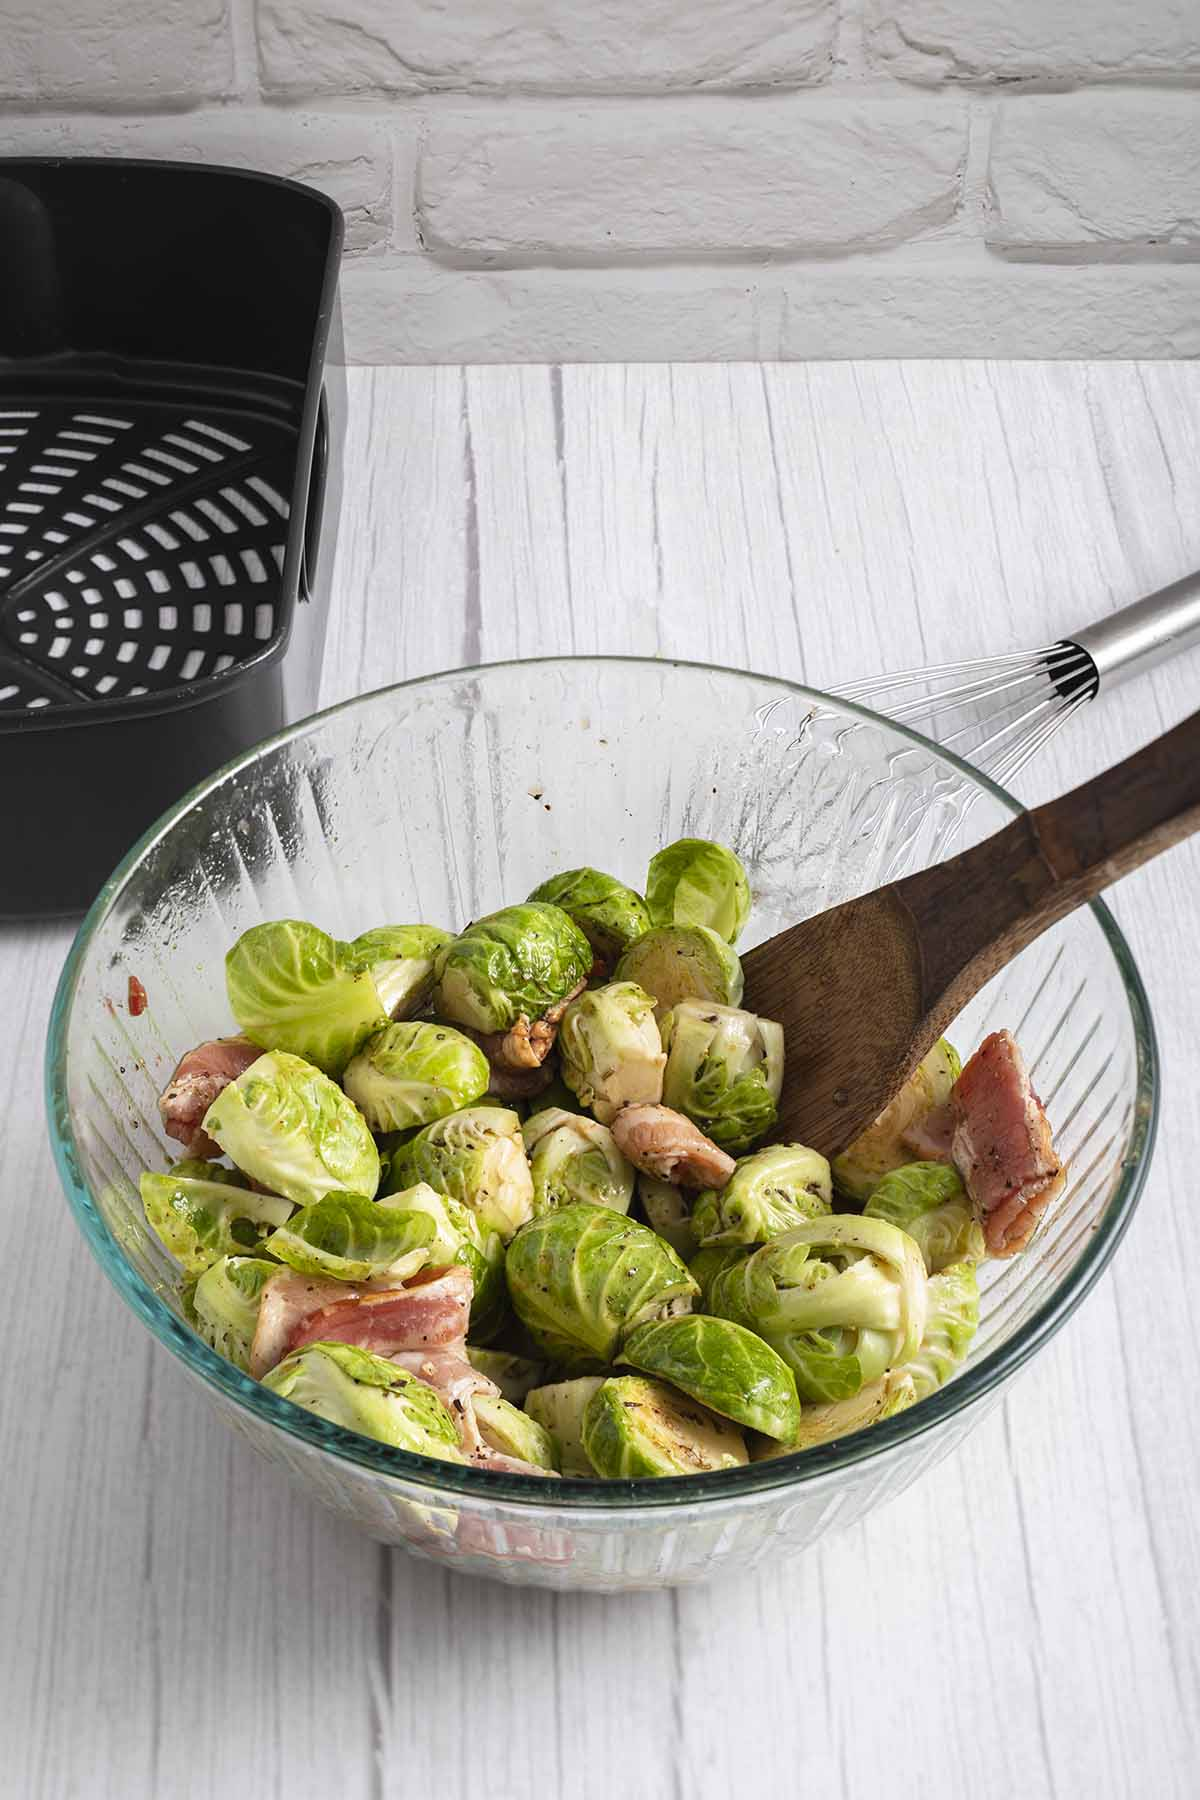 toss Brussels sprouts with brown sugar mix